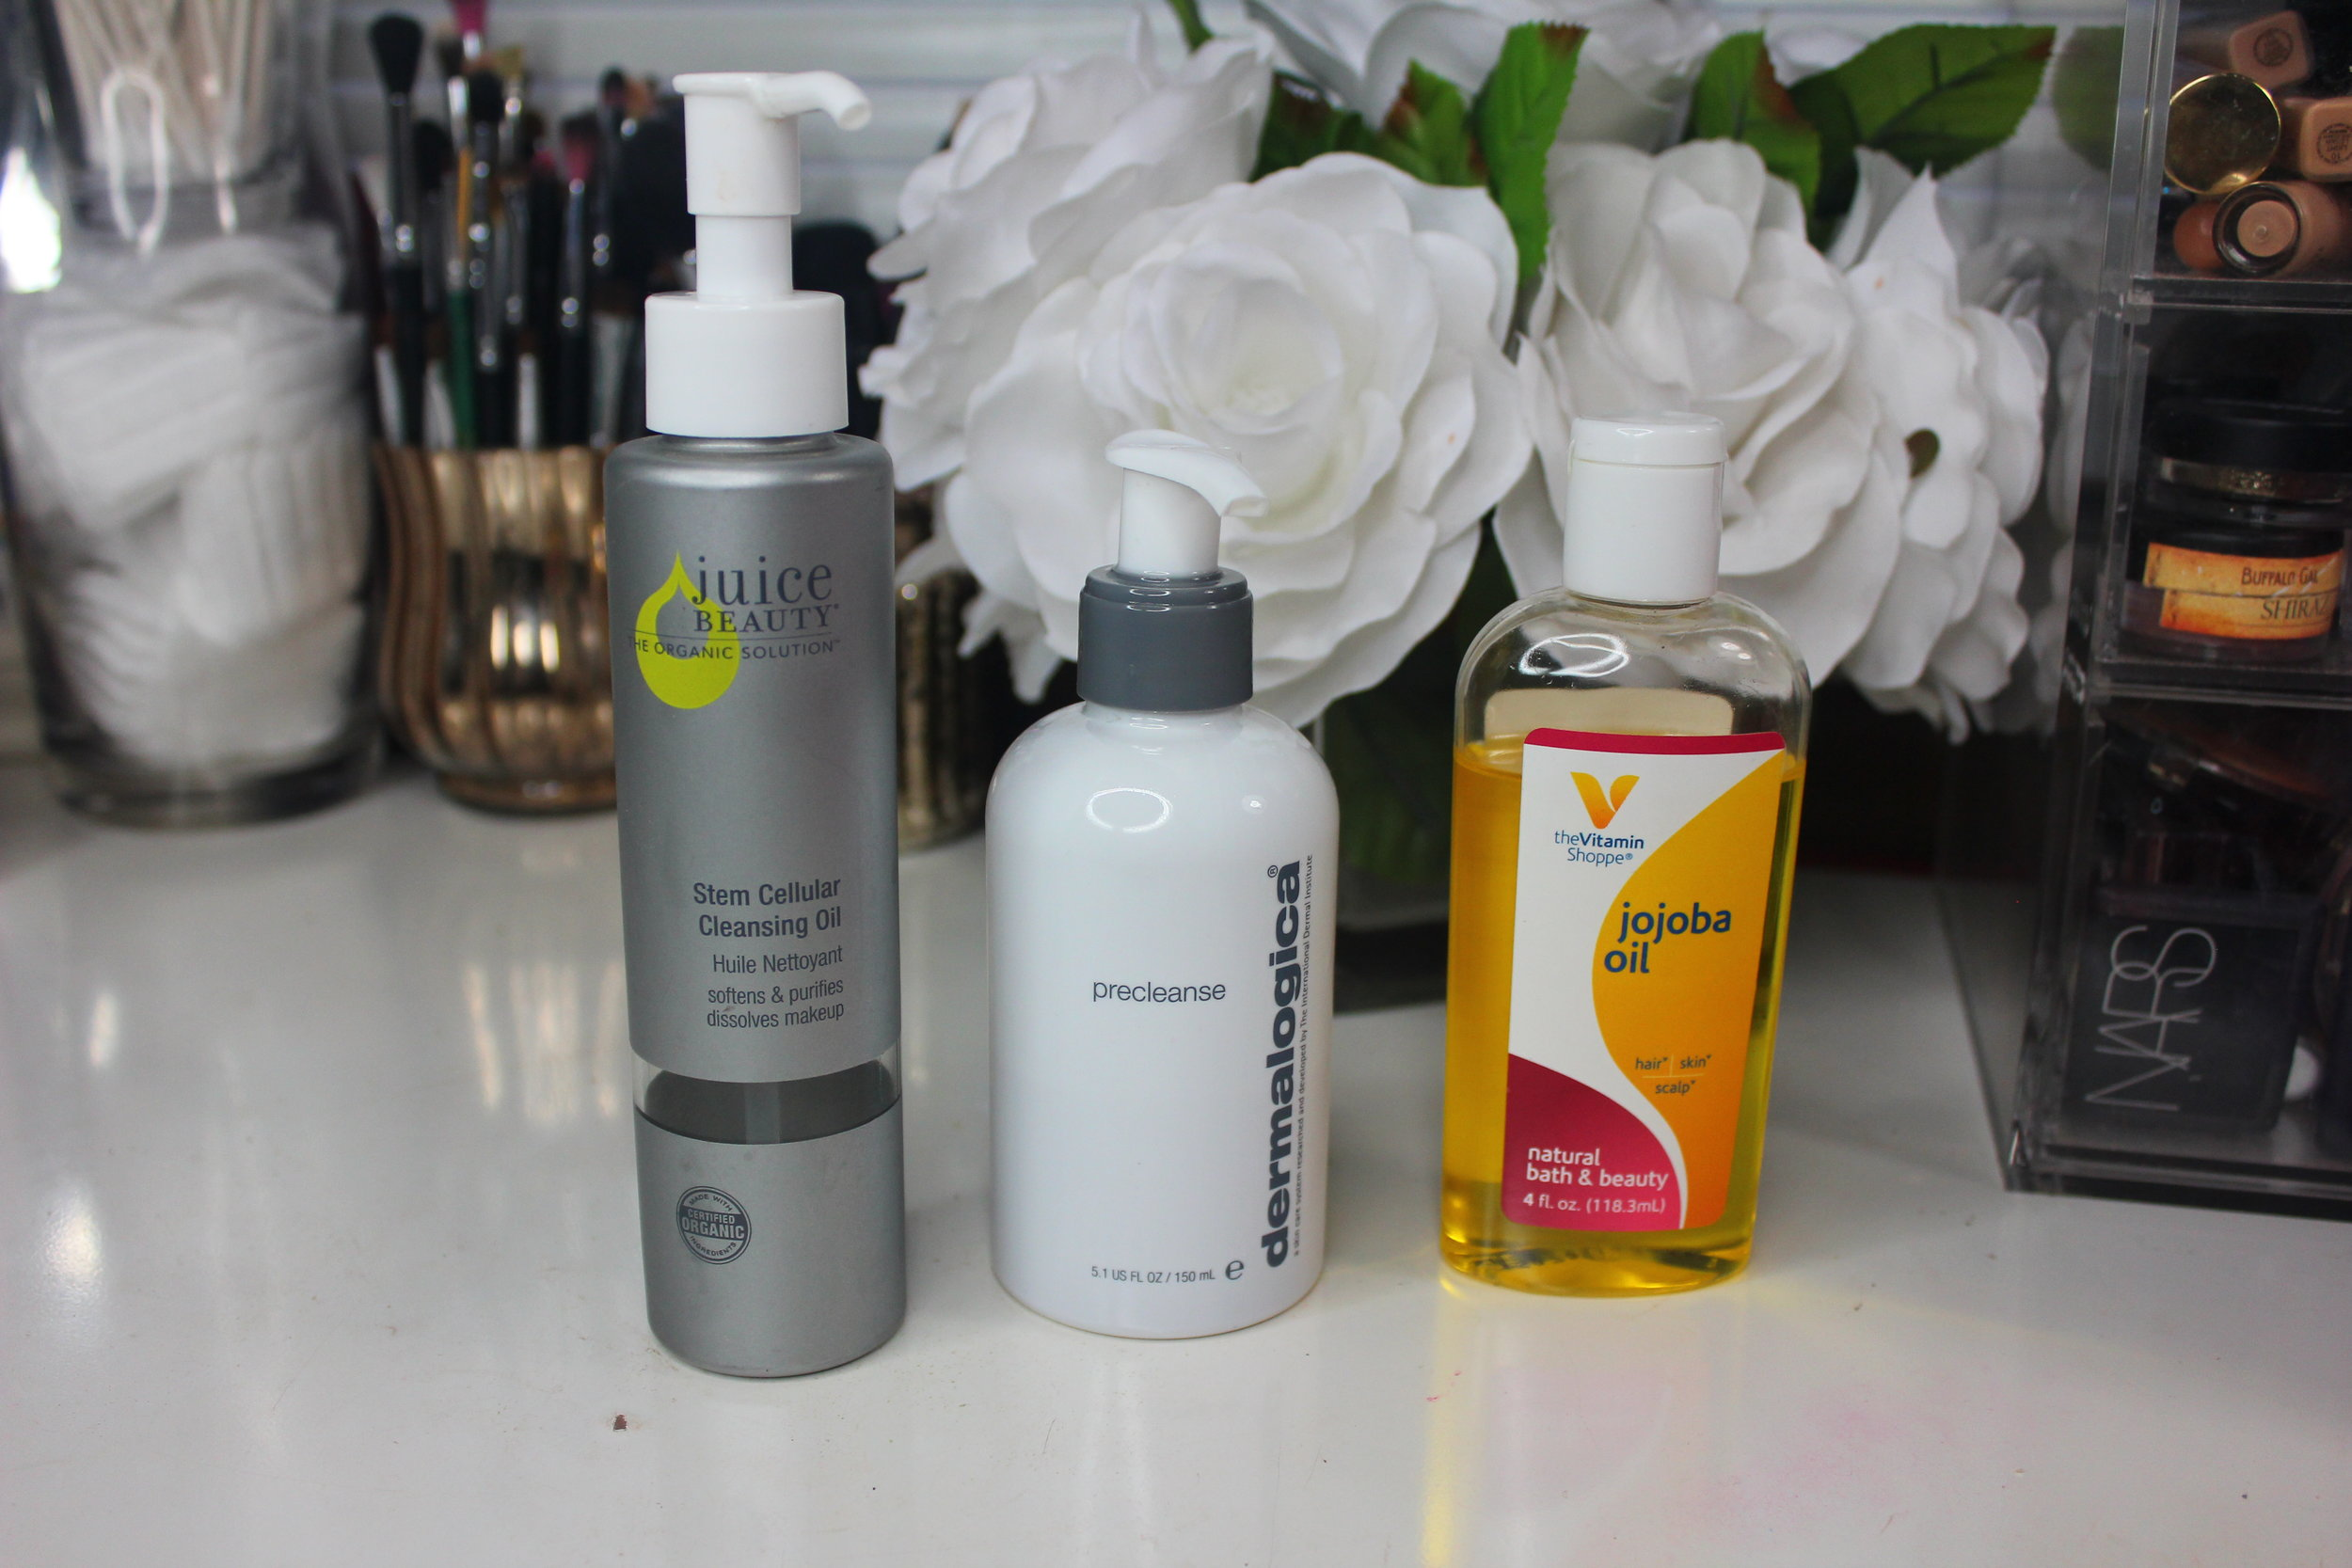 Cleansing OIls - Juice Beauty Stem Cellular, Dermalogica Precleanse, Jojoba Oil